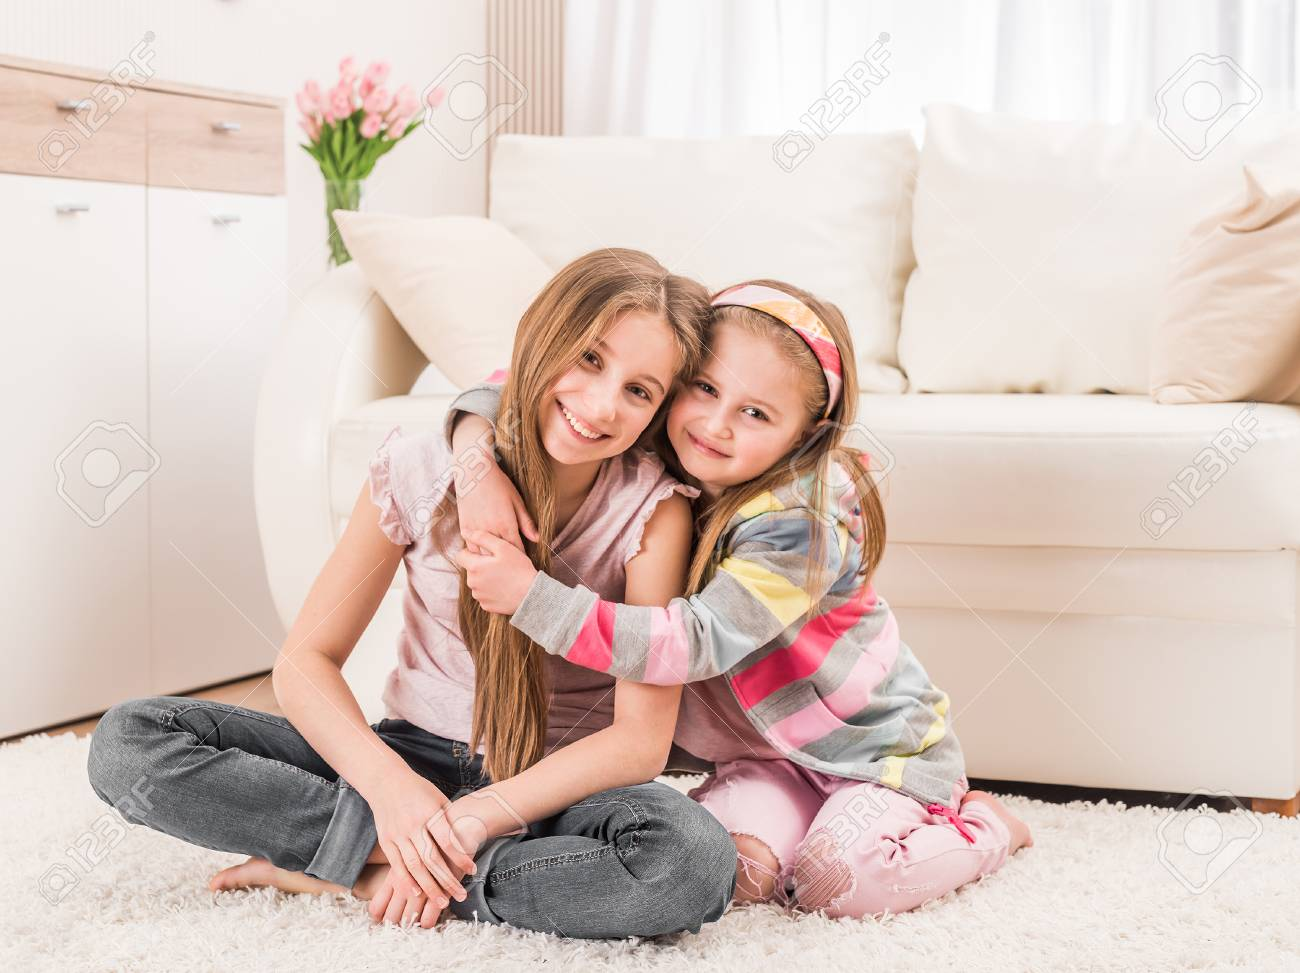 Two sisters sitting in embrace - 118405428